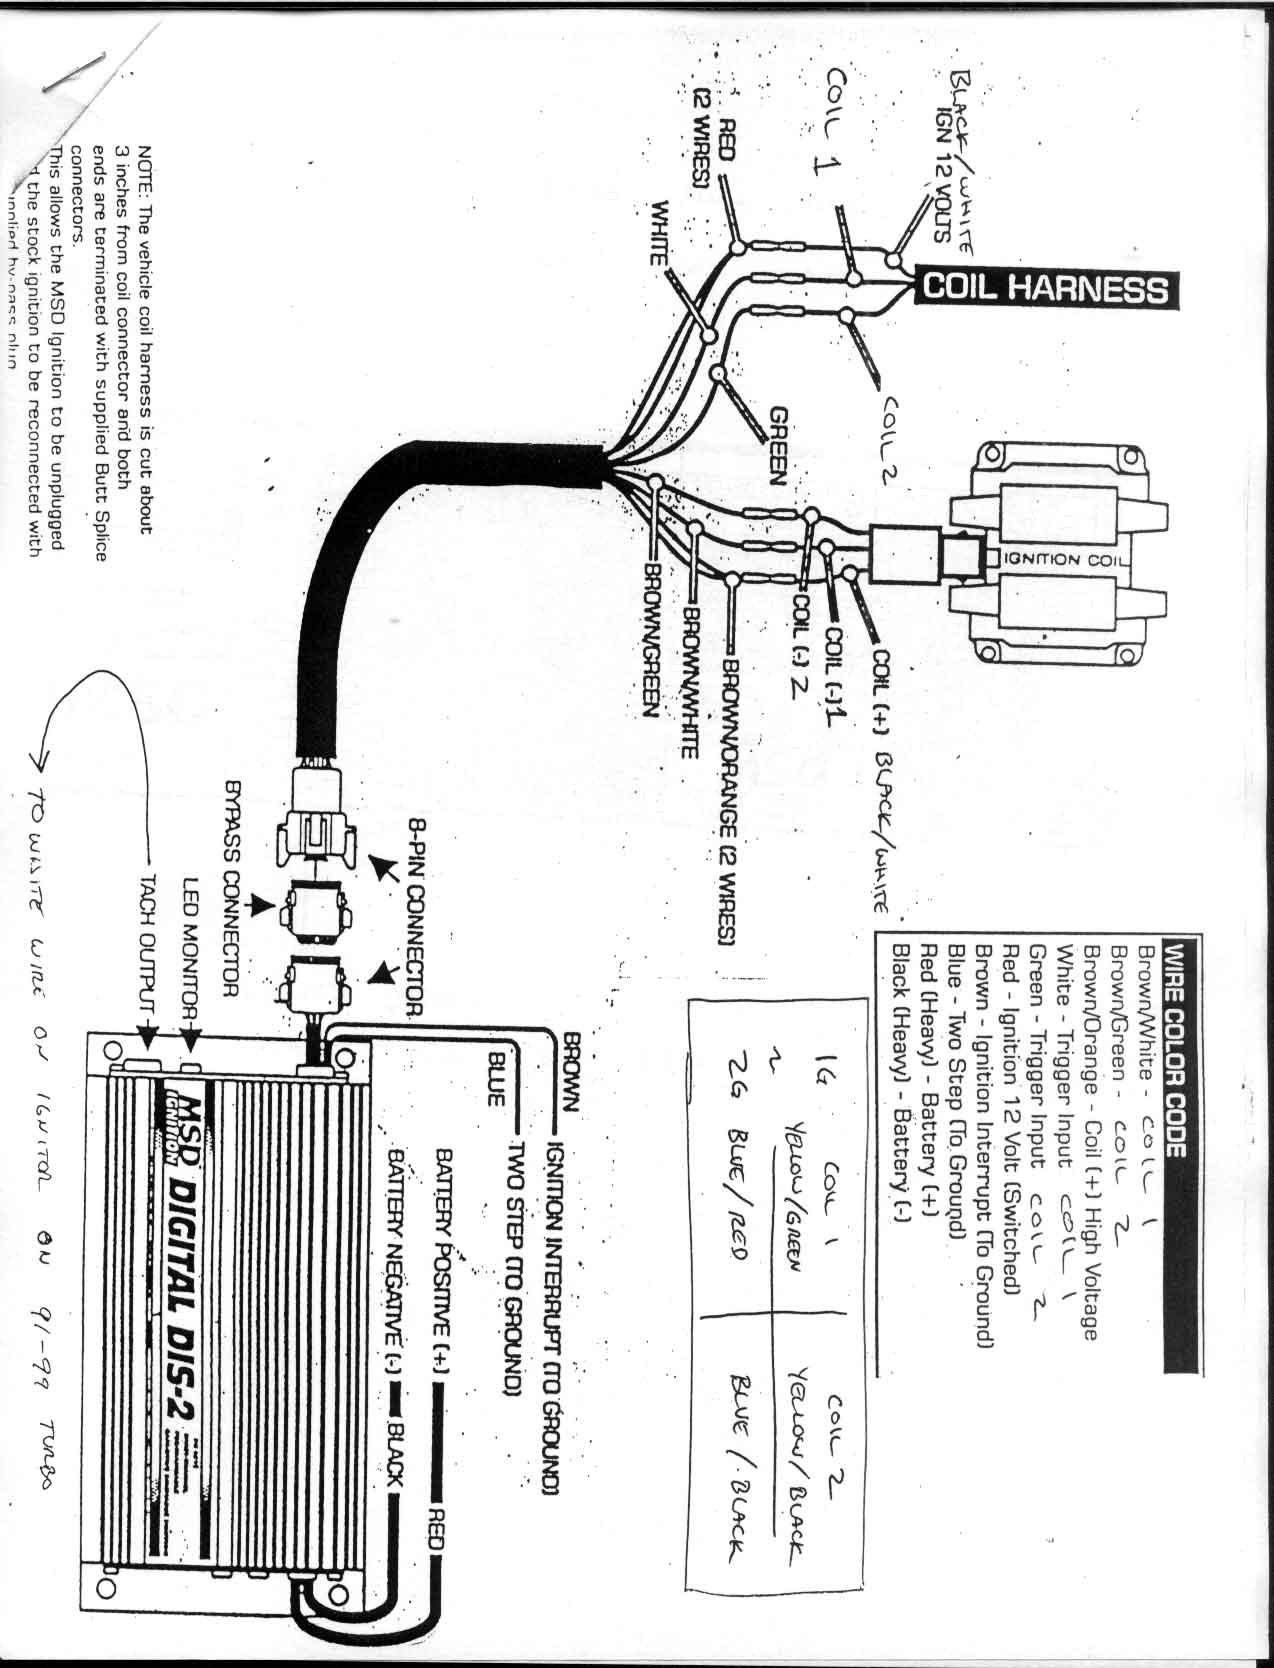 msd dis 2 wiring diagram kia spectra stereo trouble hooking up dsmtuners